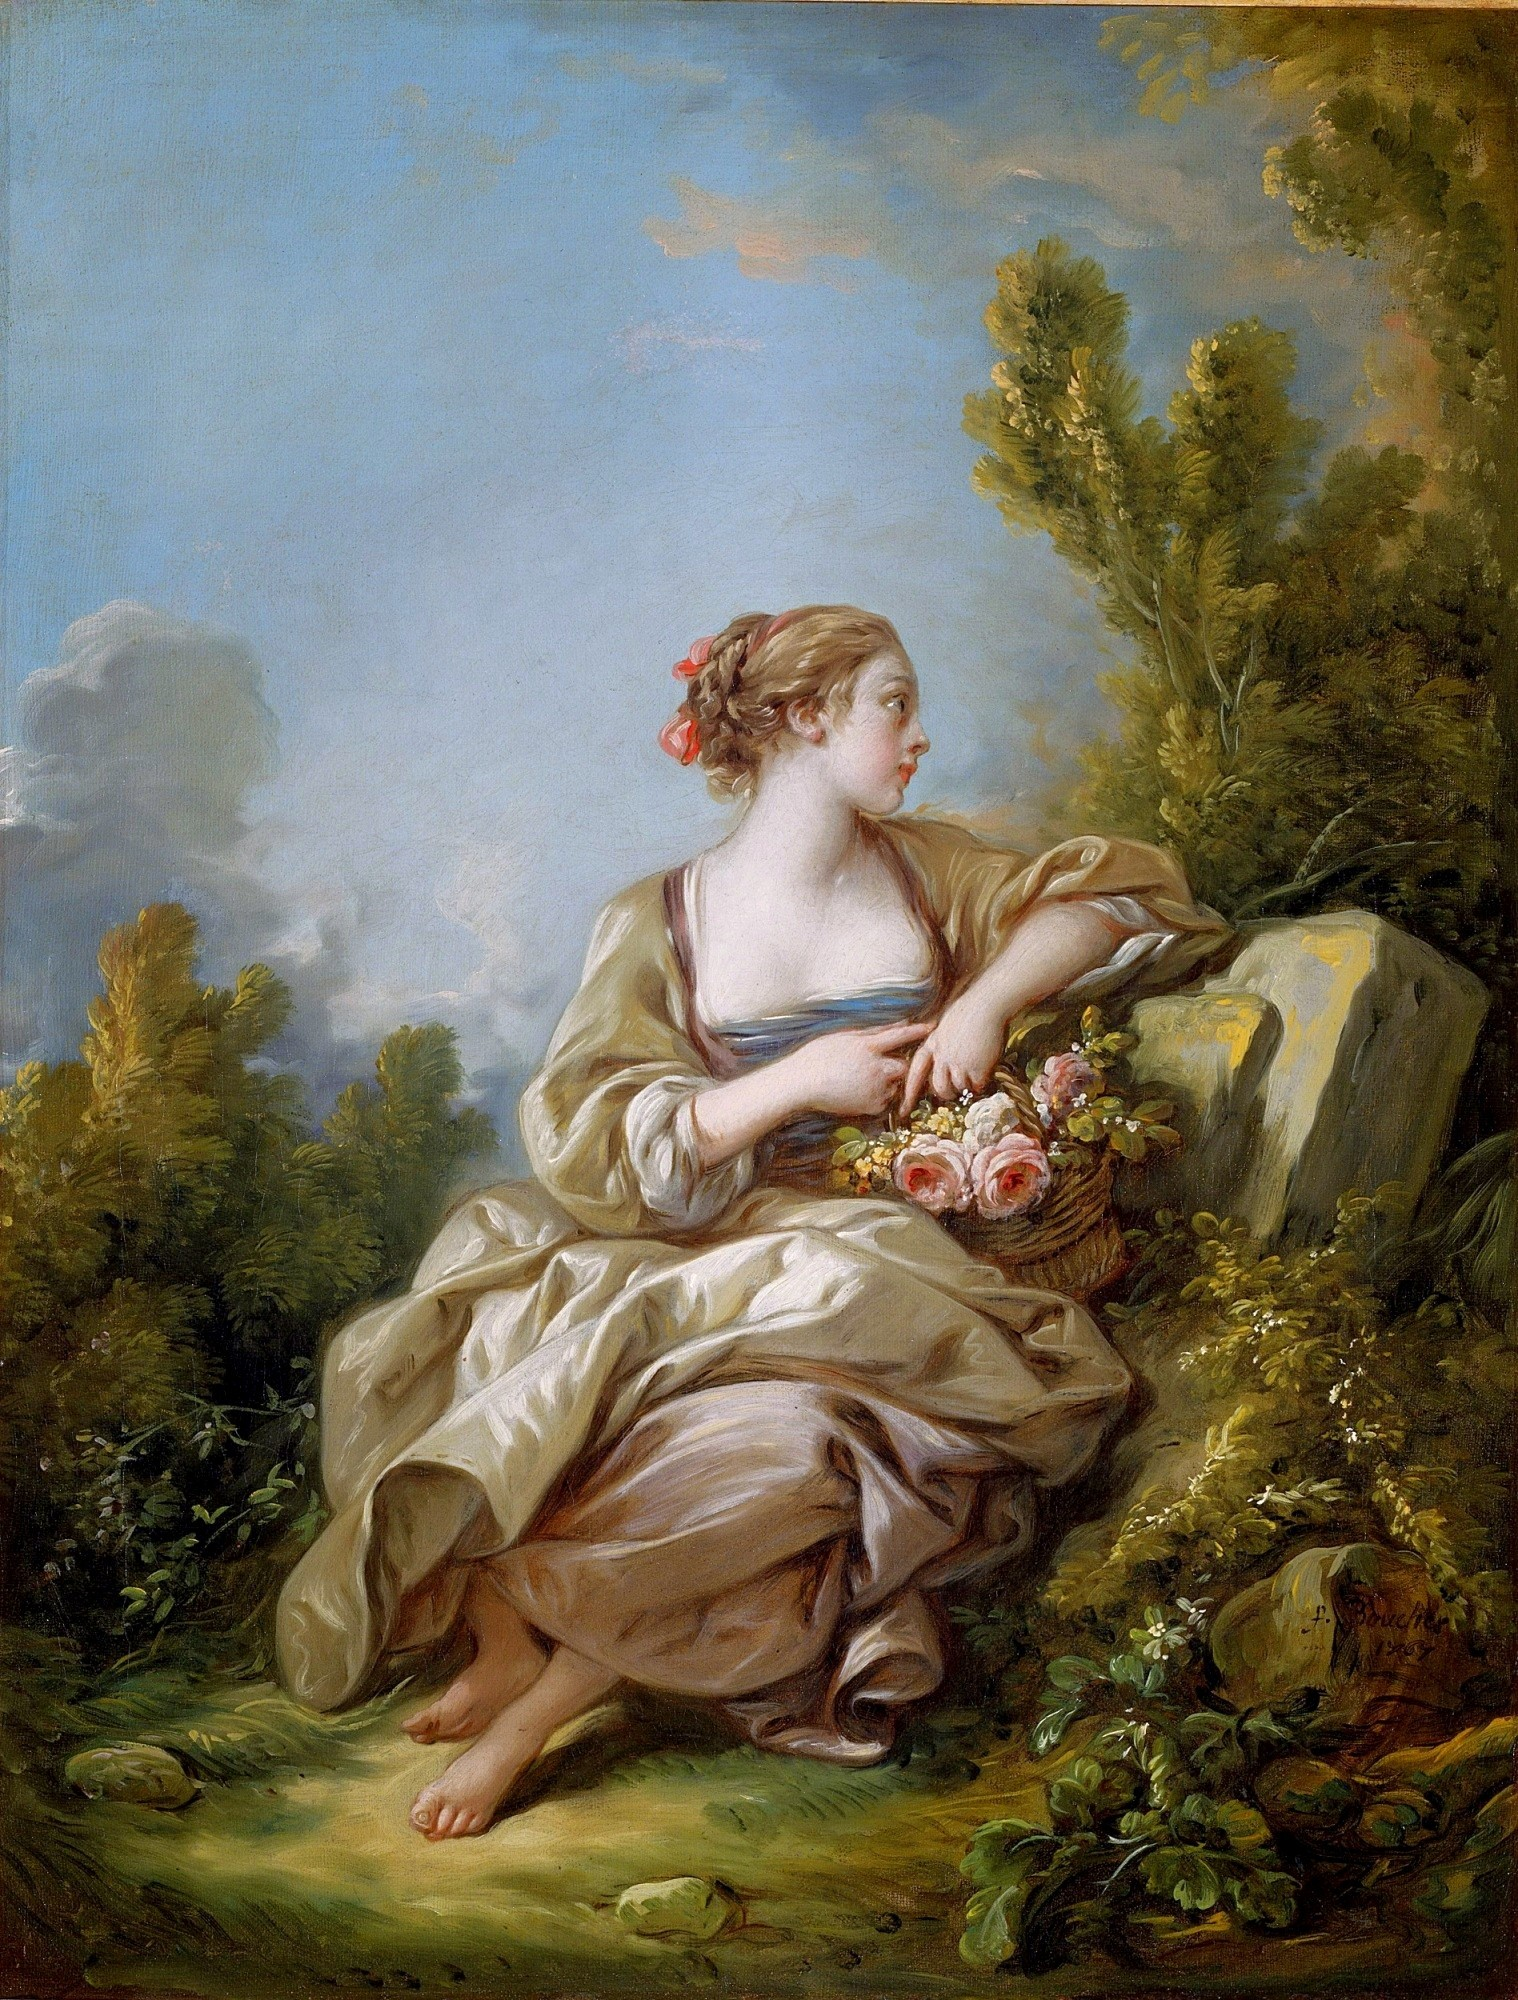 The Young Gardener, Francois Boucher